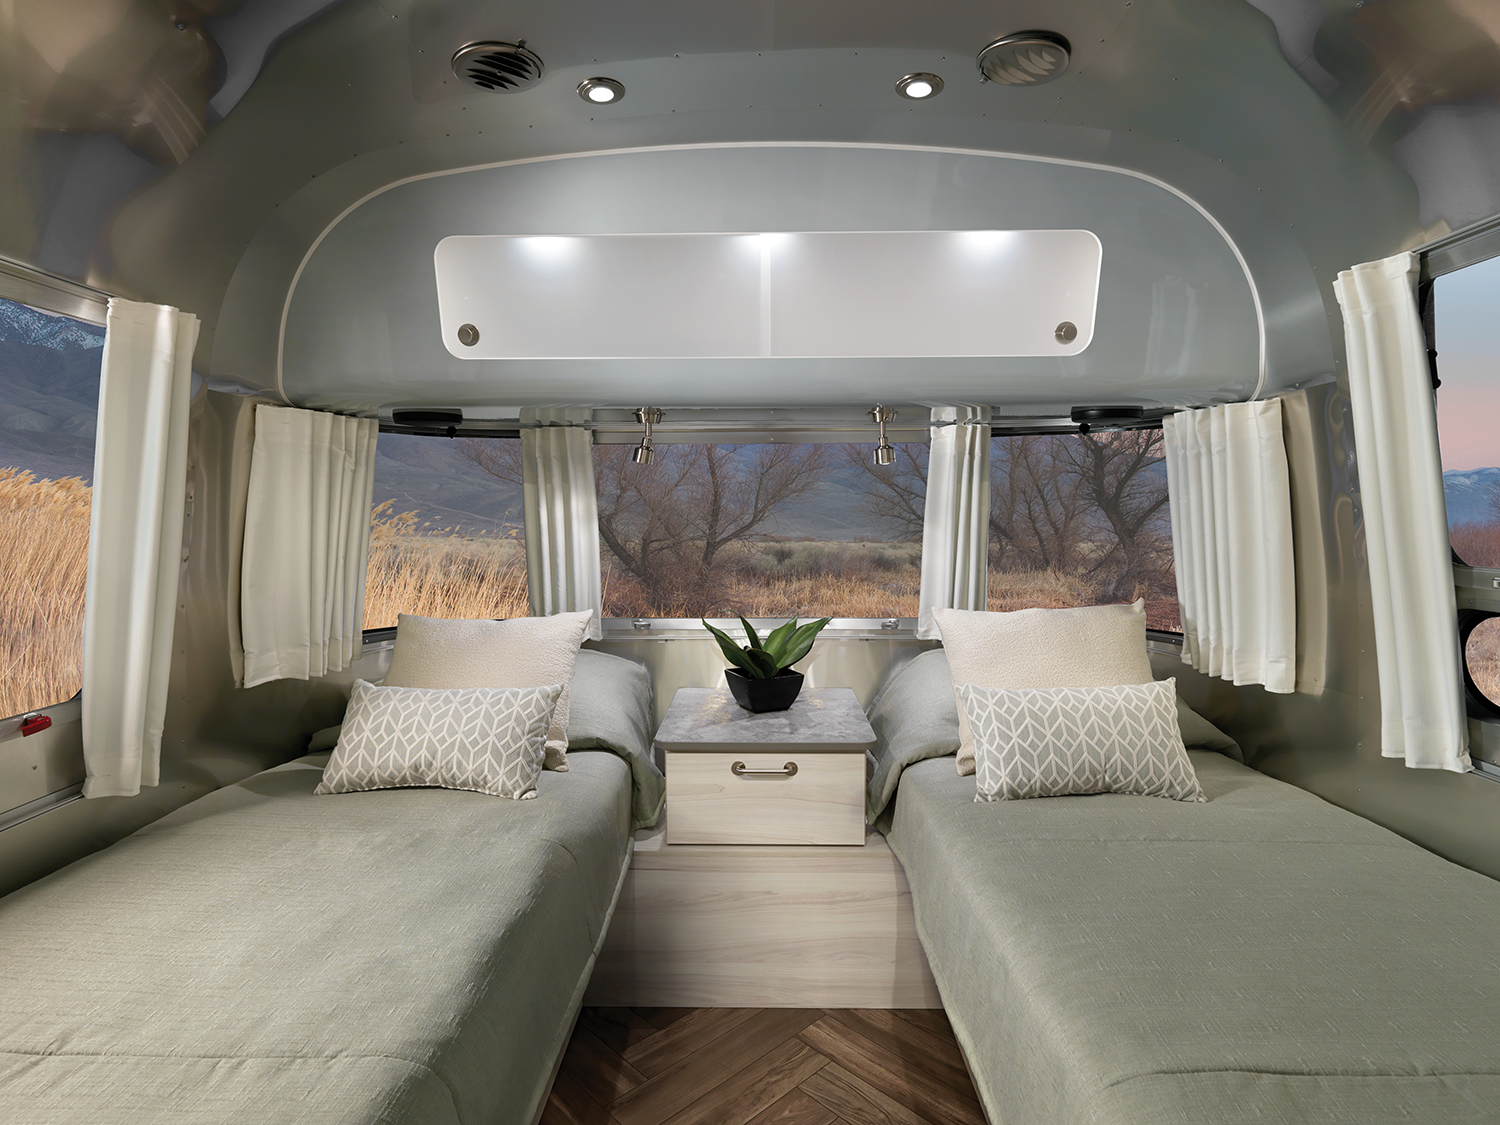 2021 Airstream Flying Cloud International Trailers Get Great New Interiors